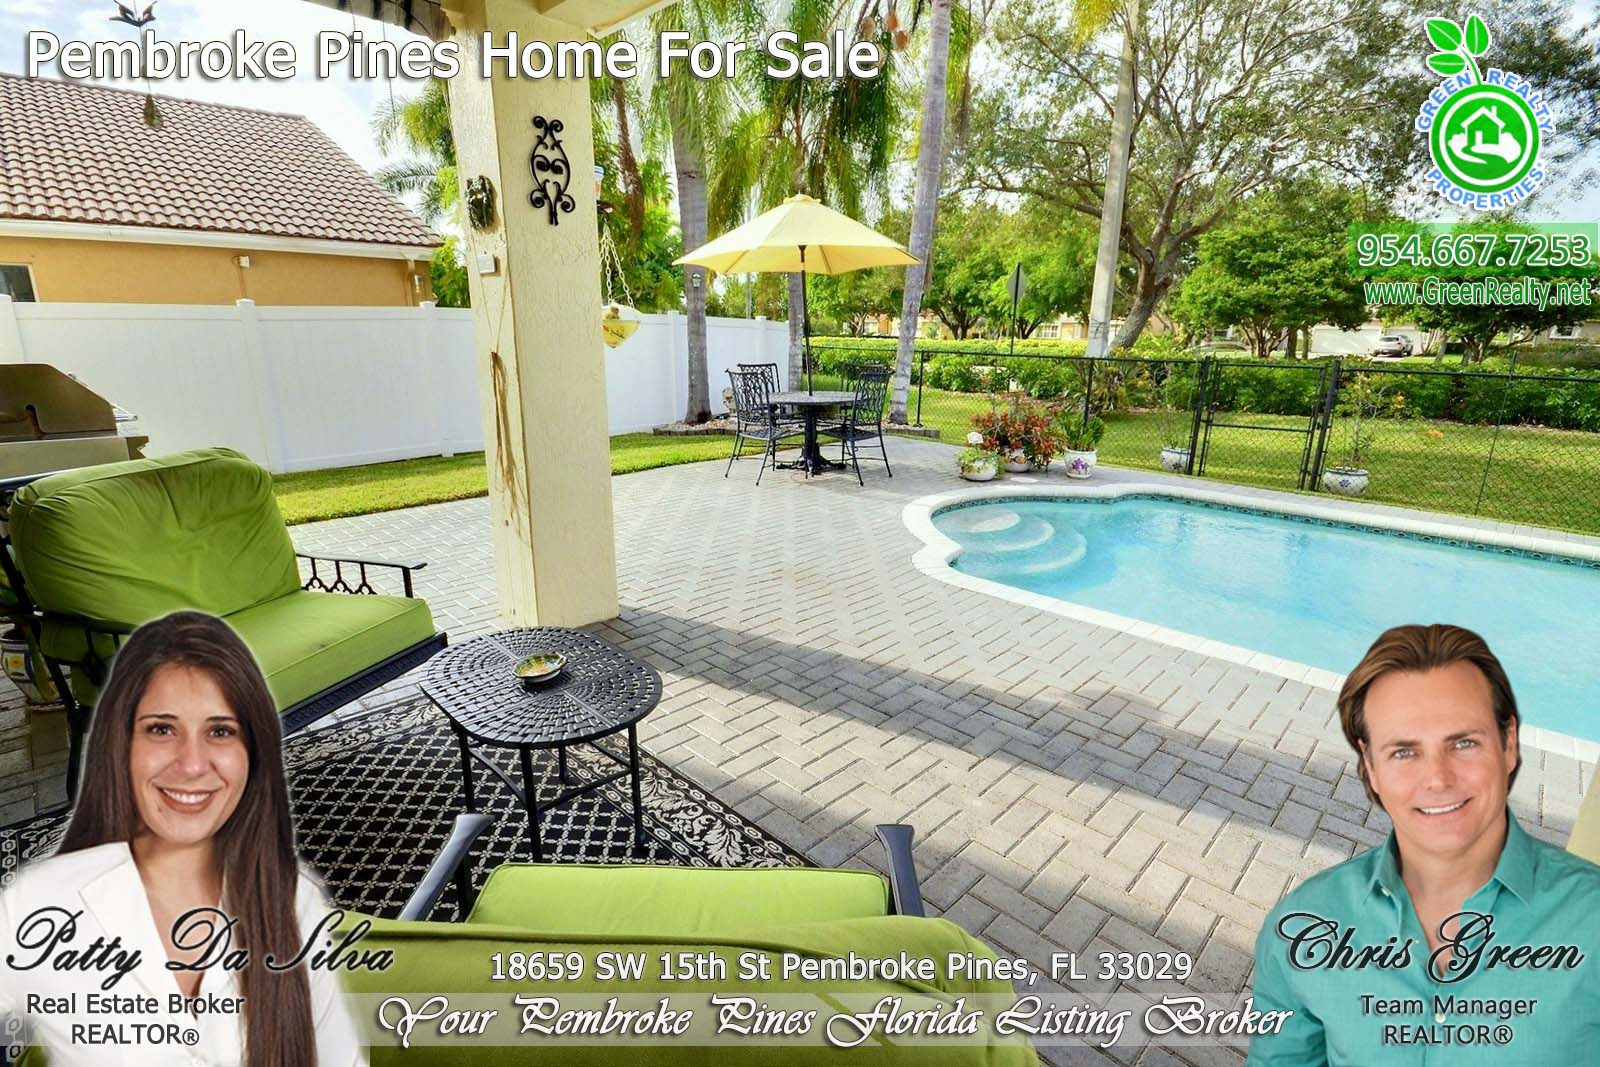 47 Pembroke Pines Homes For Sale (3)